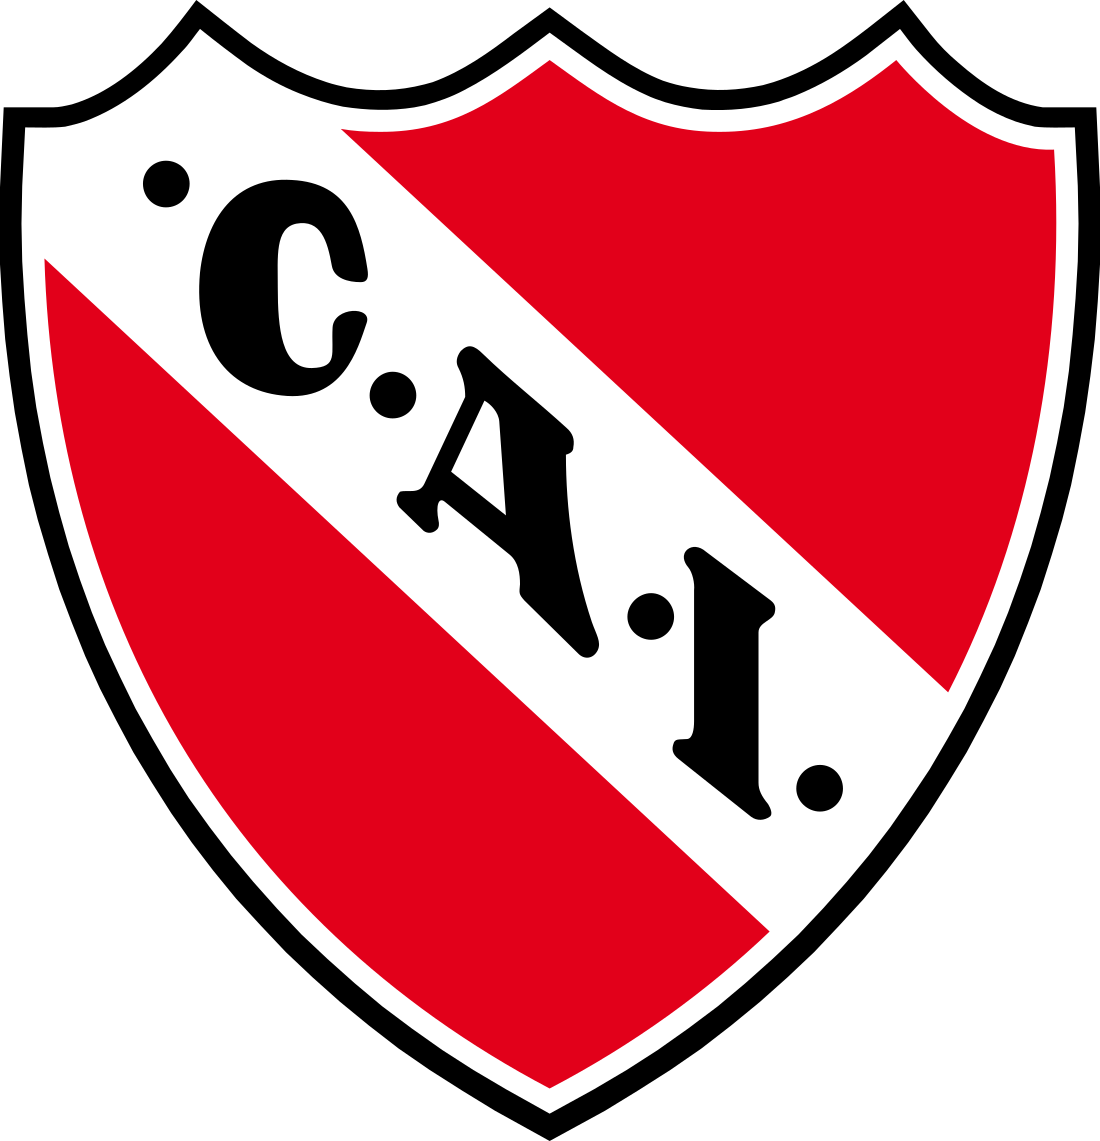 clube independiente logo escudo 3 - Club Atlético Independiente Logo - Escudo